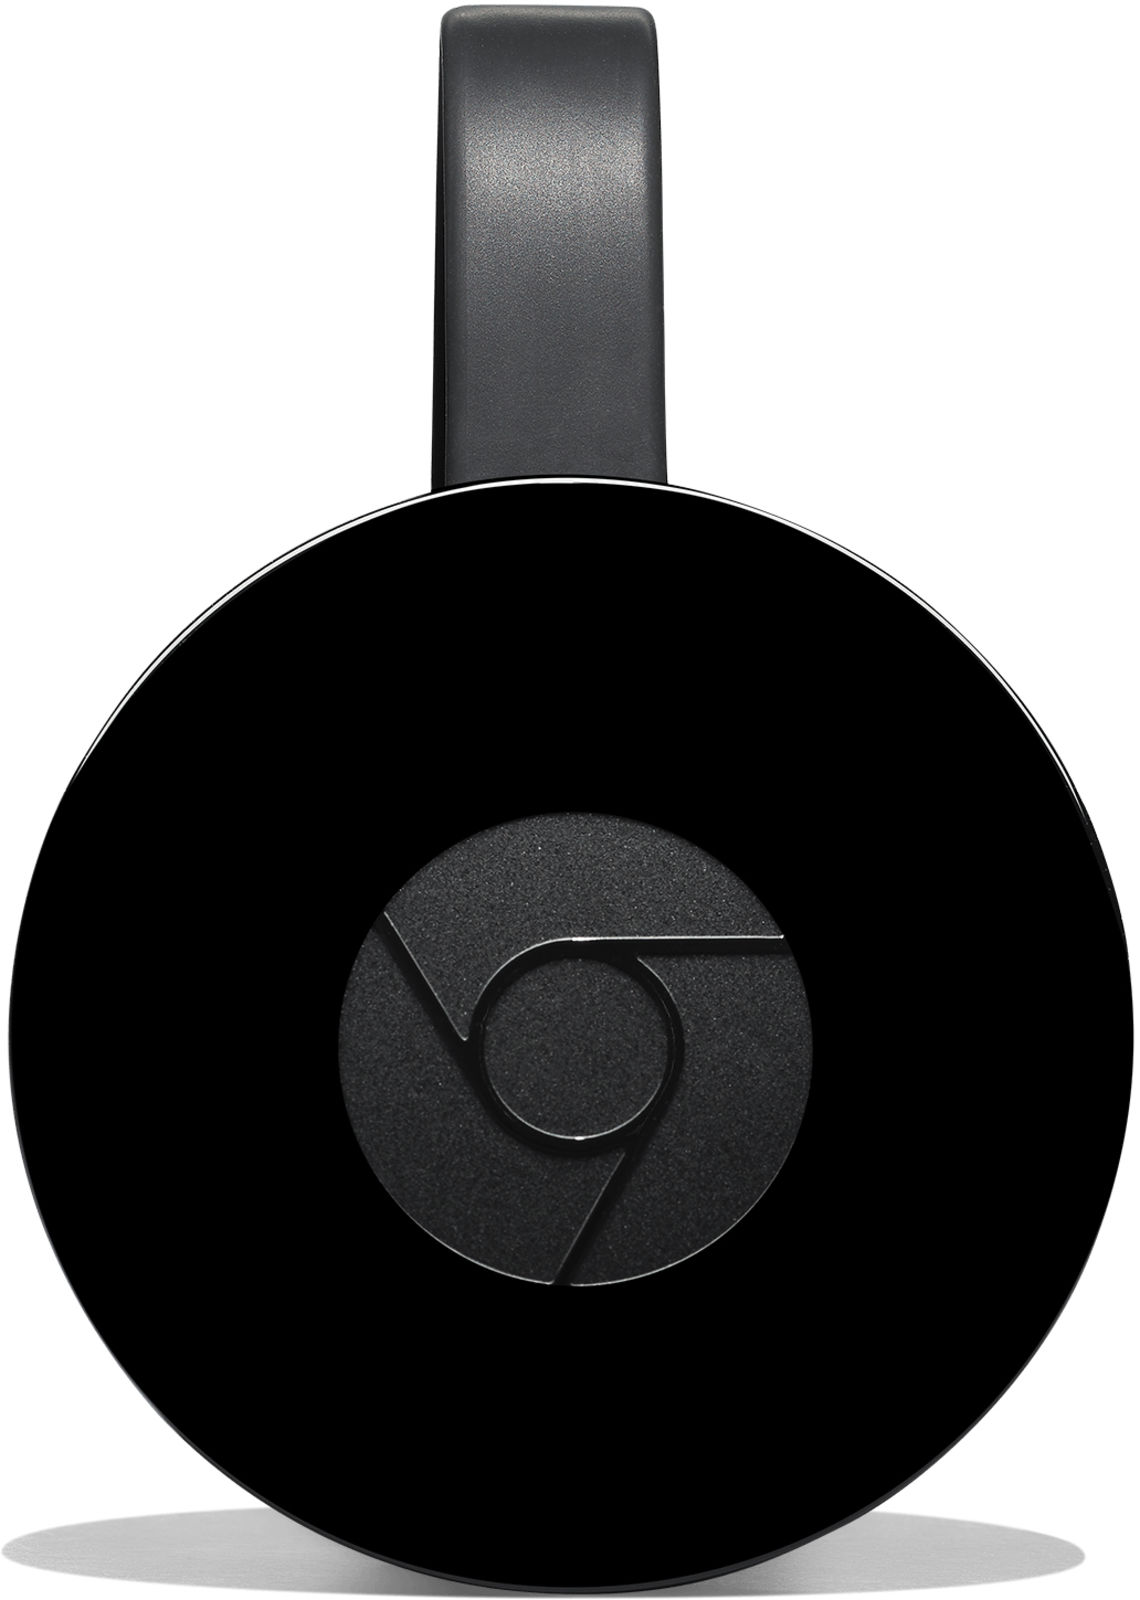 Google Chromecast II Streaming Dongle WIFI Black GA3A00129-A10-Z01 - eet01